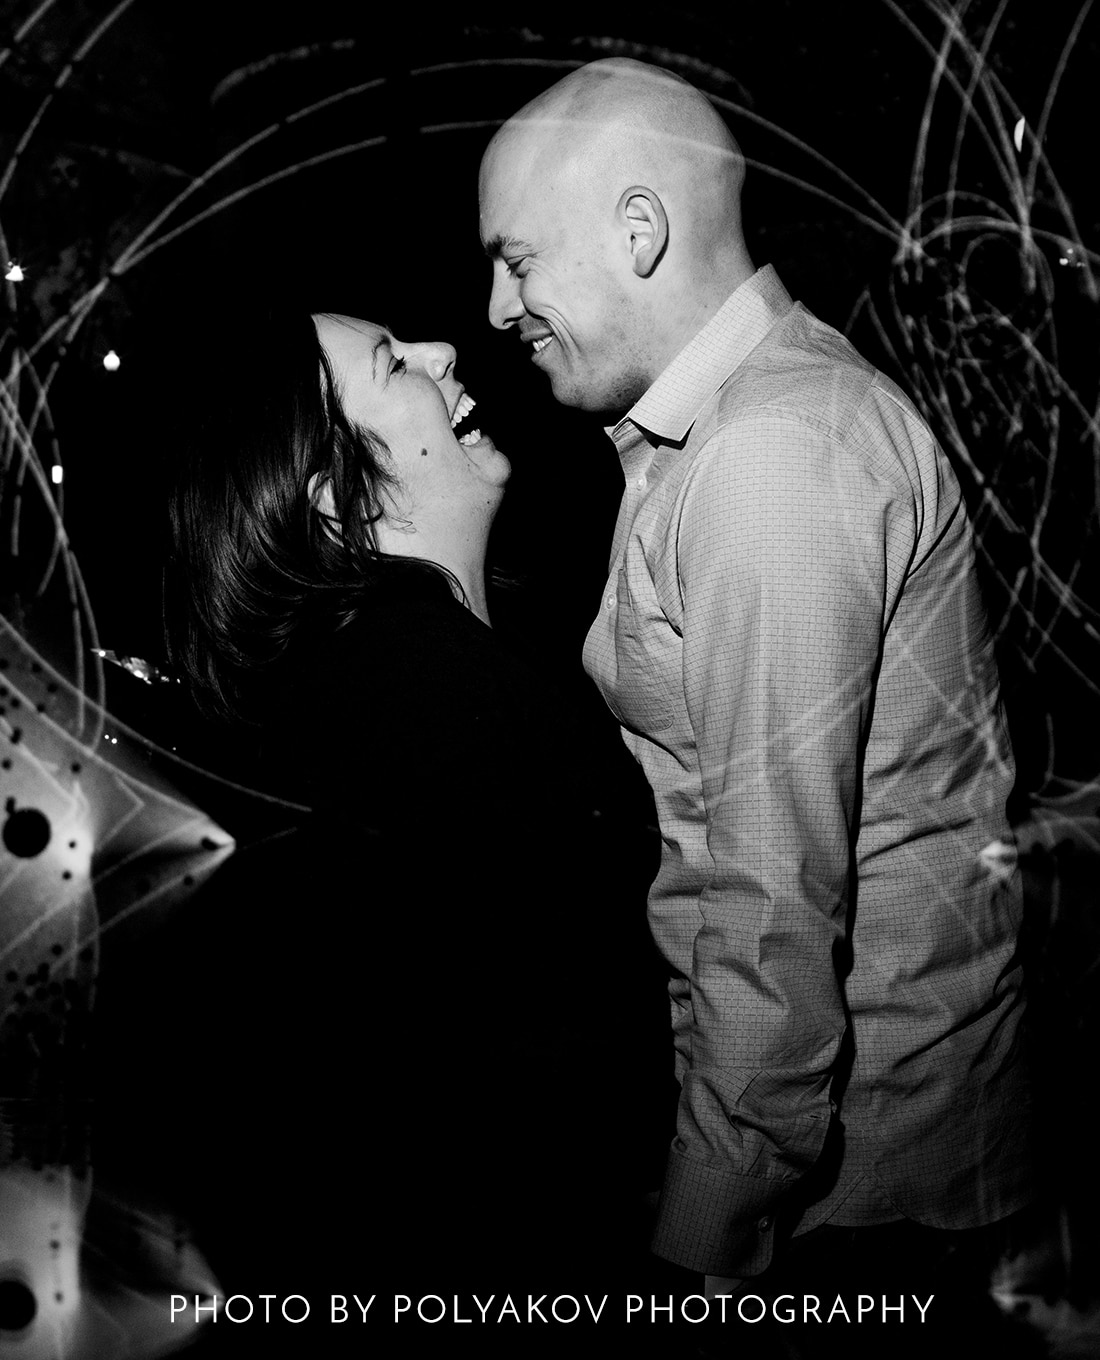 A candid black and white picture of a man and woman holding hands and laughing hysterically as the look at each other.